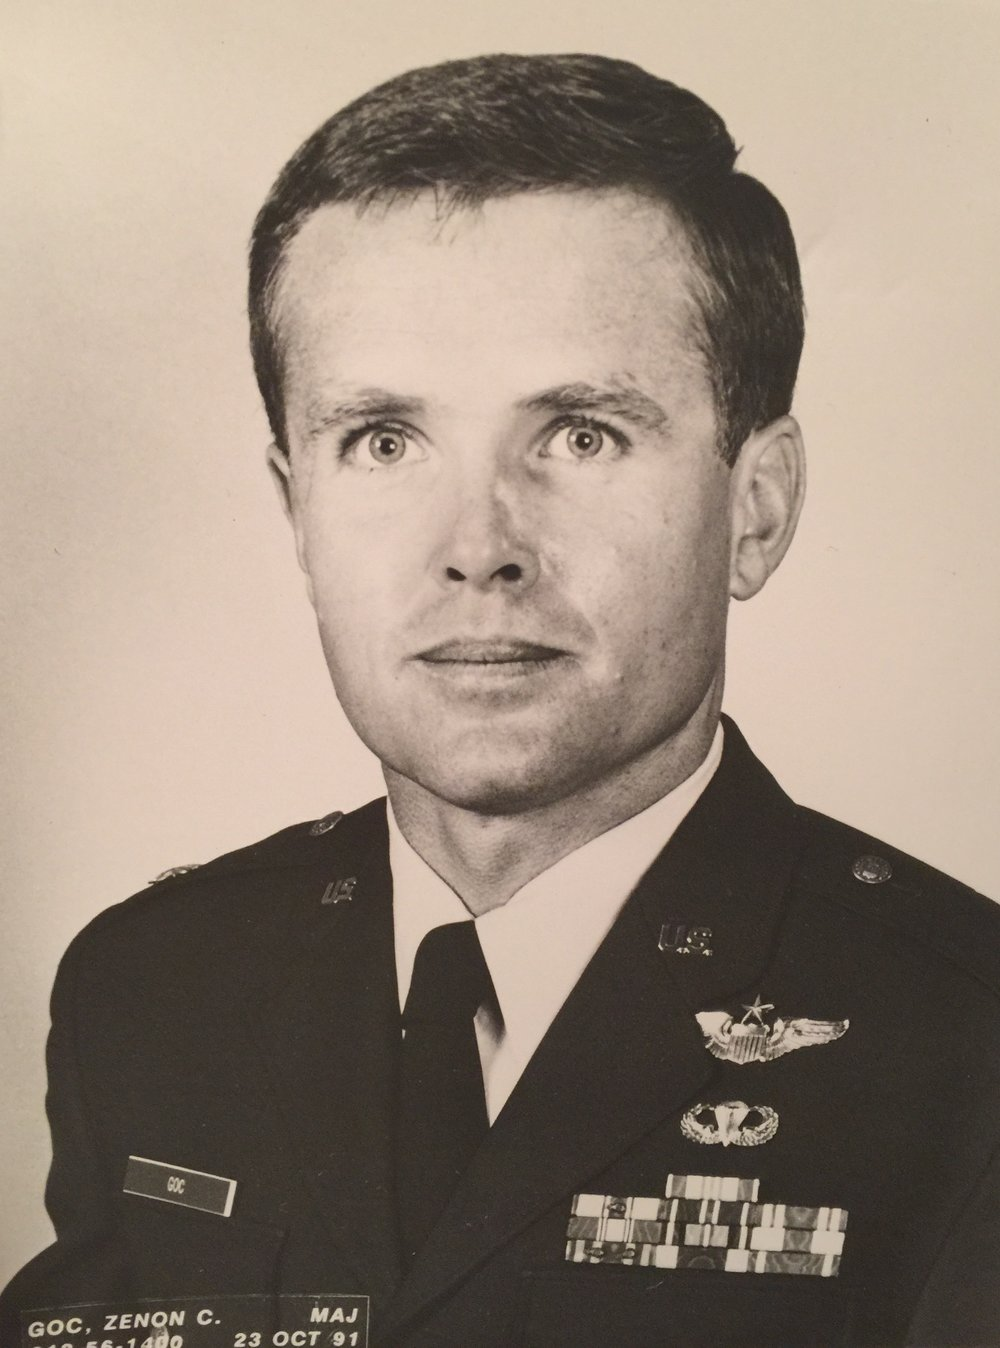 Air Force Maj. Zenon Goc, who was killed in a B-1 Bomber crash in 1992. (Children of Fallen Patriots Foundation)